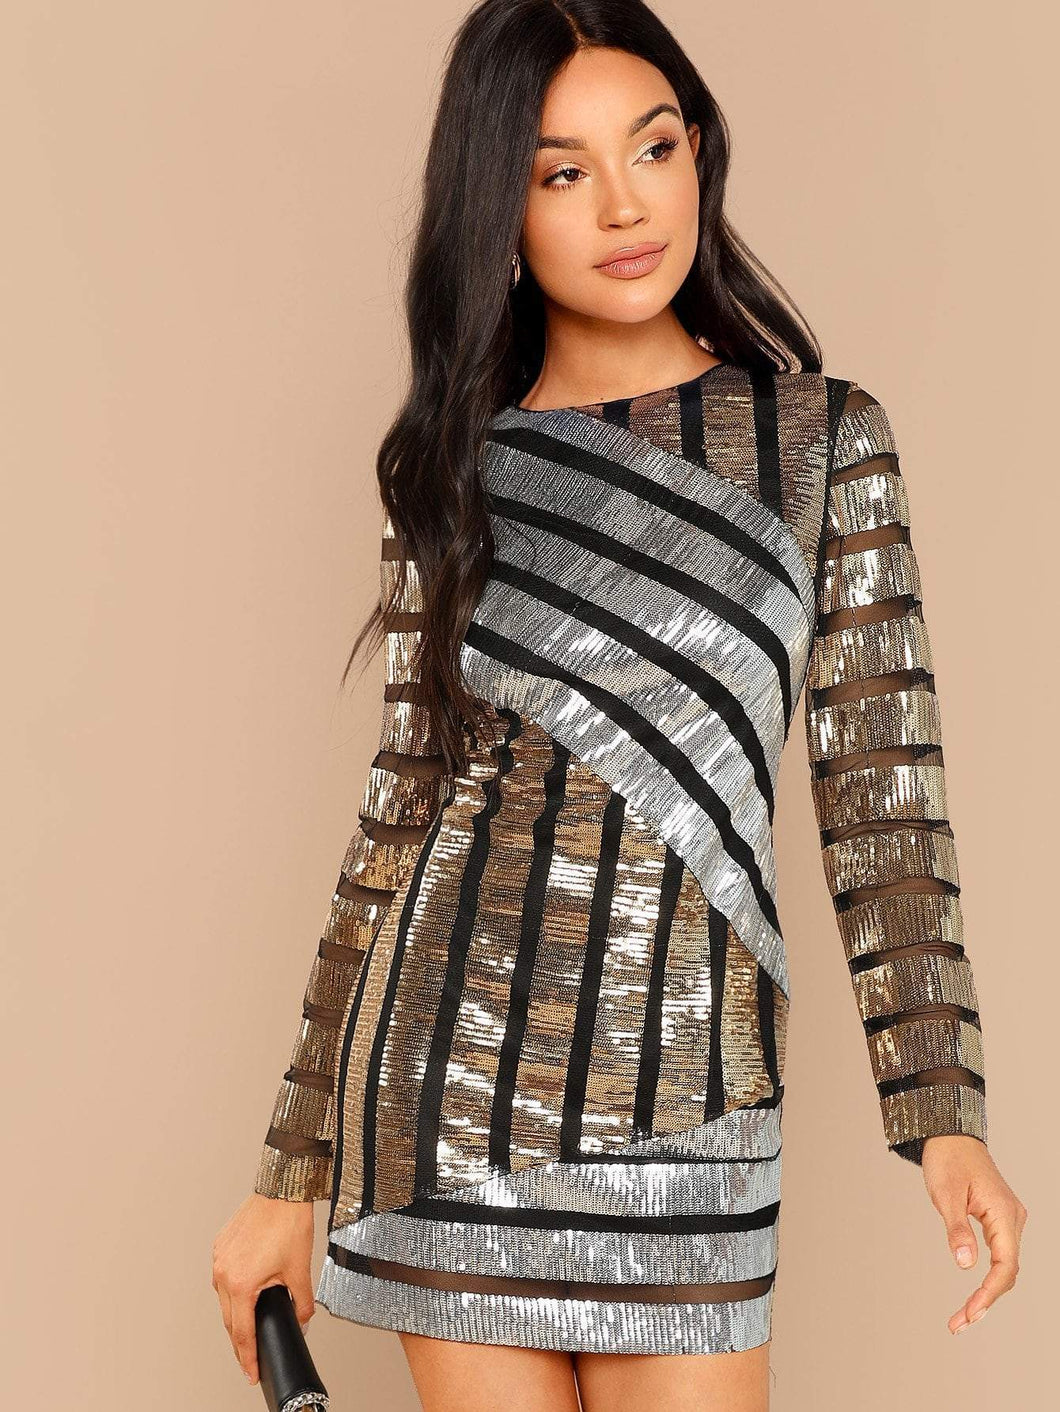 Cut and Sew Sequin Textured Dress fashion clothing accessories shoes jewelry